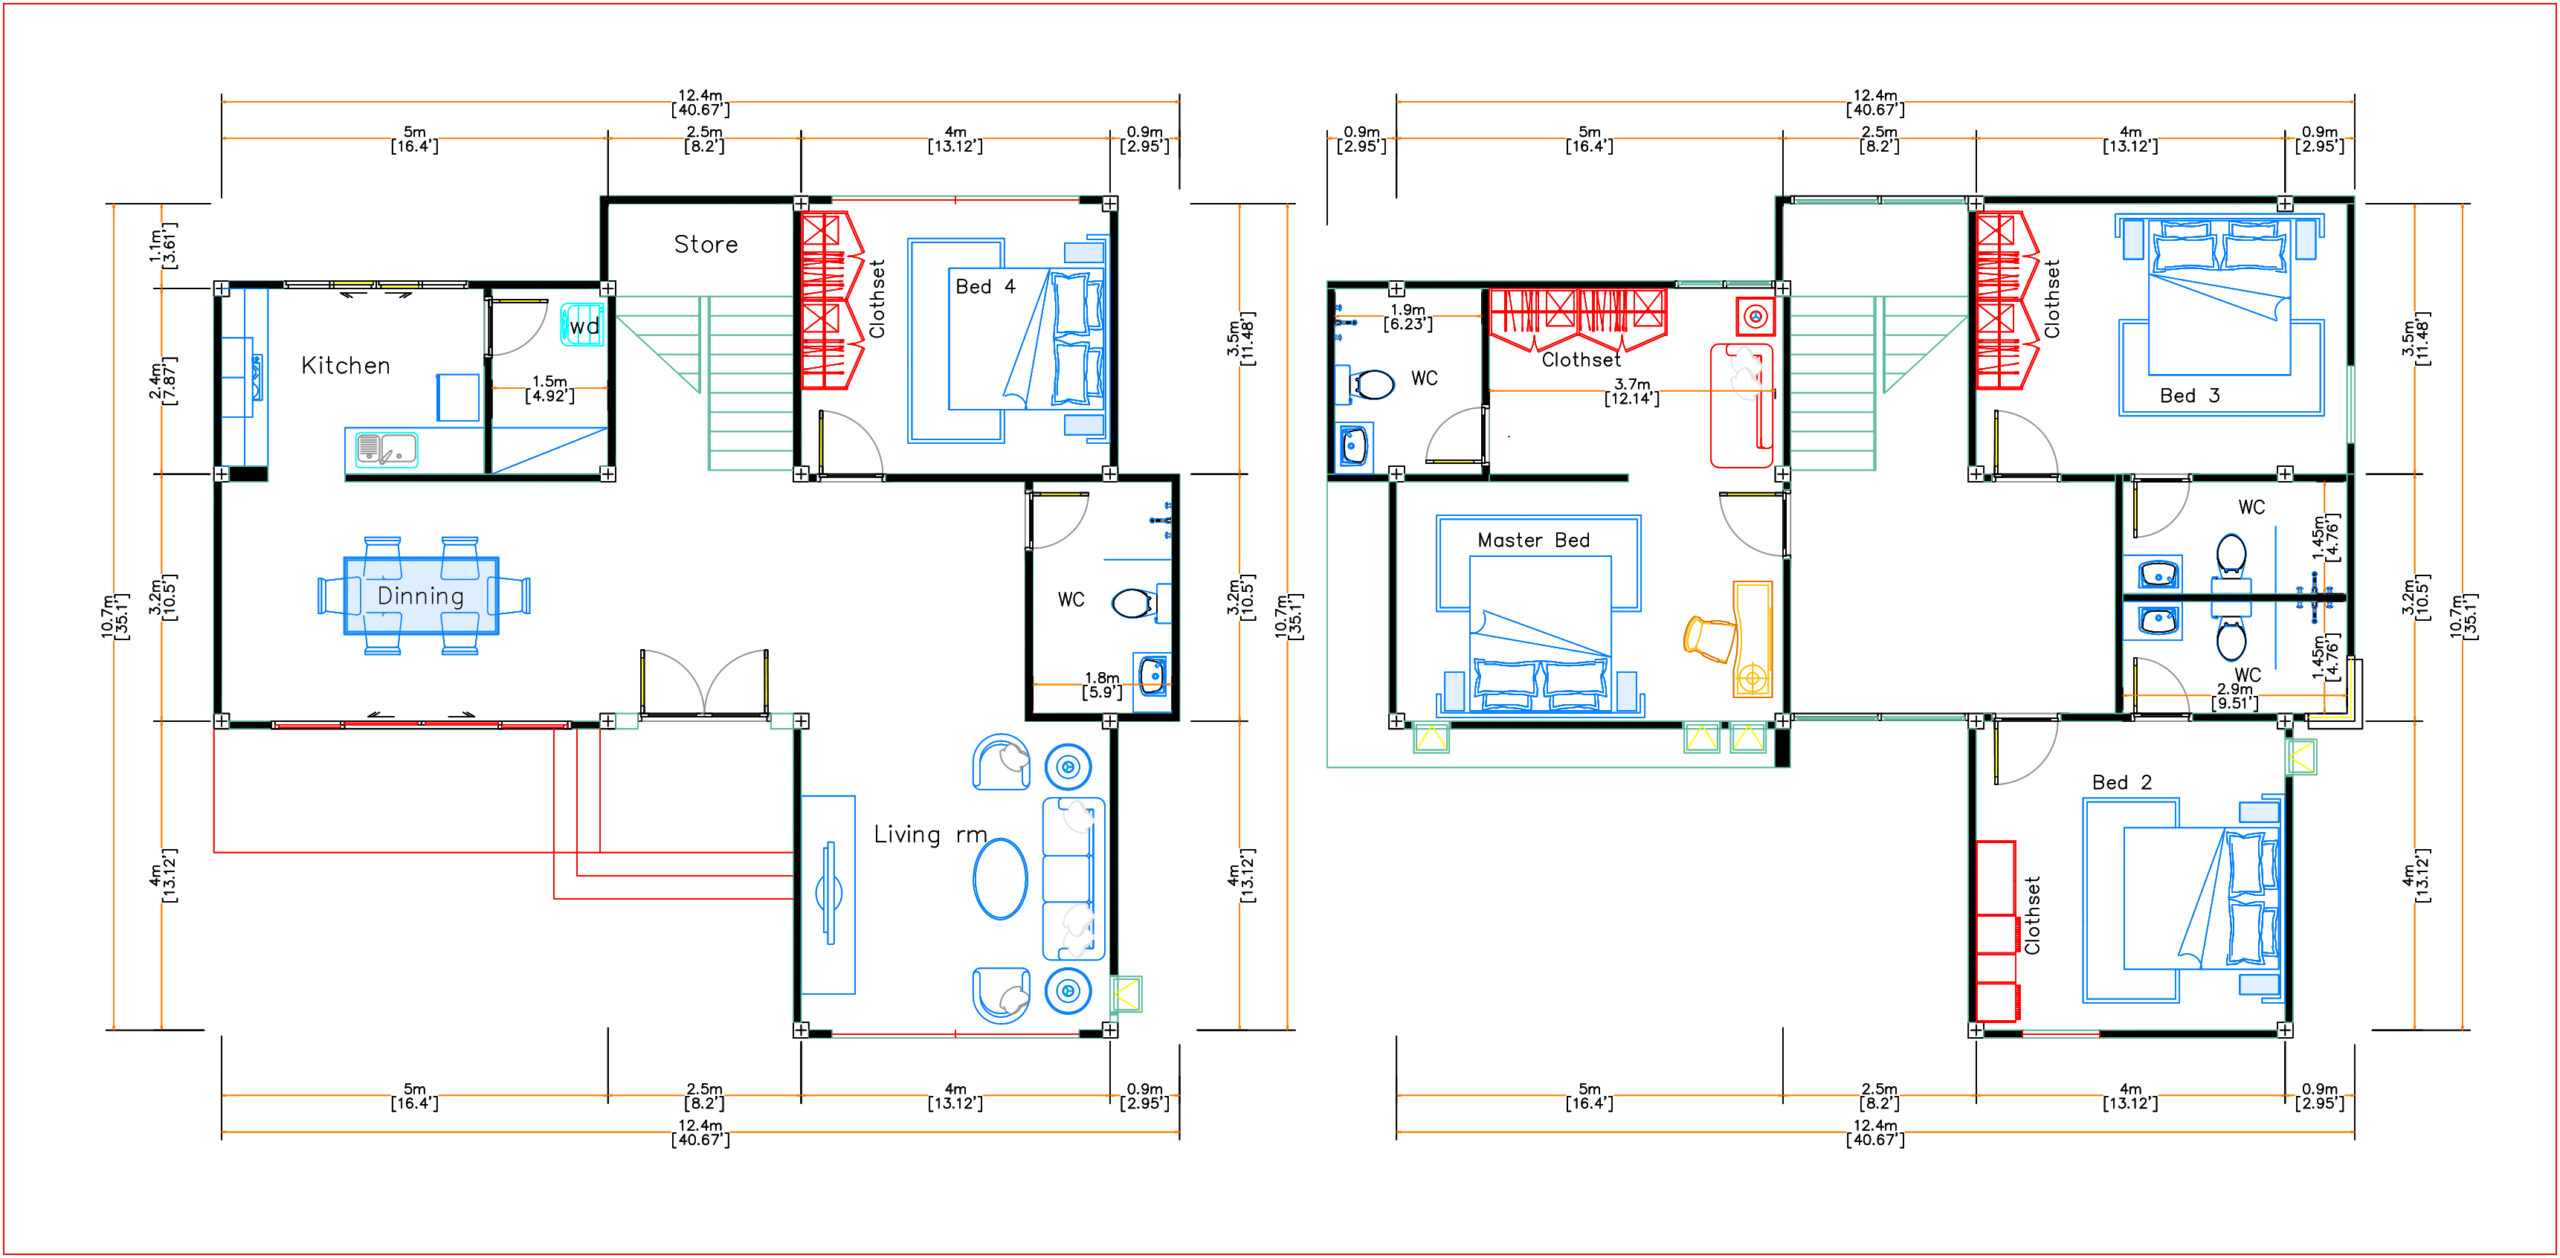 House Design 12.4x11 Meter 41x35 Feet 4 Beds layout floor plan